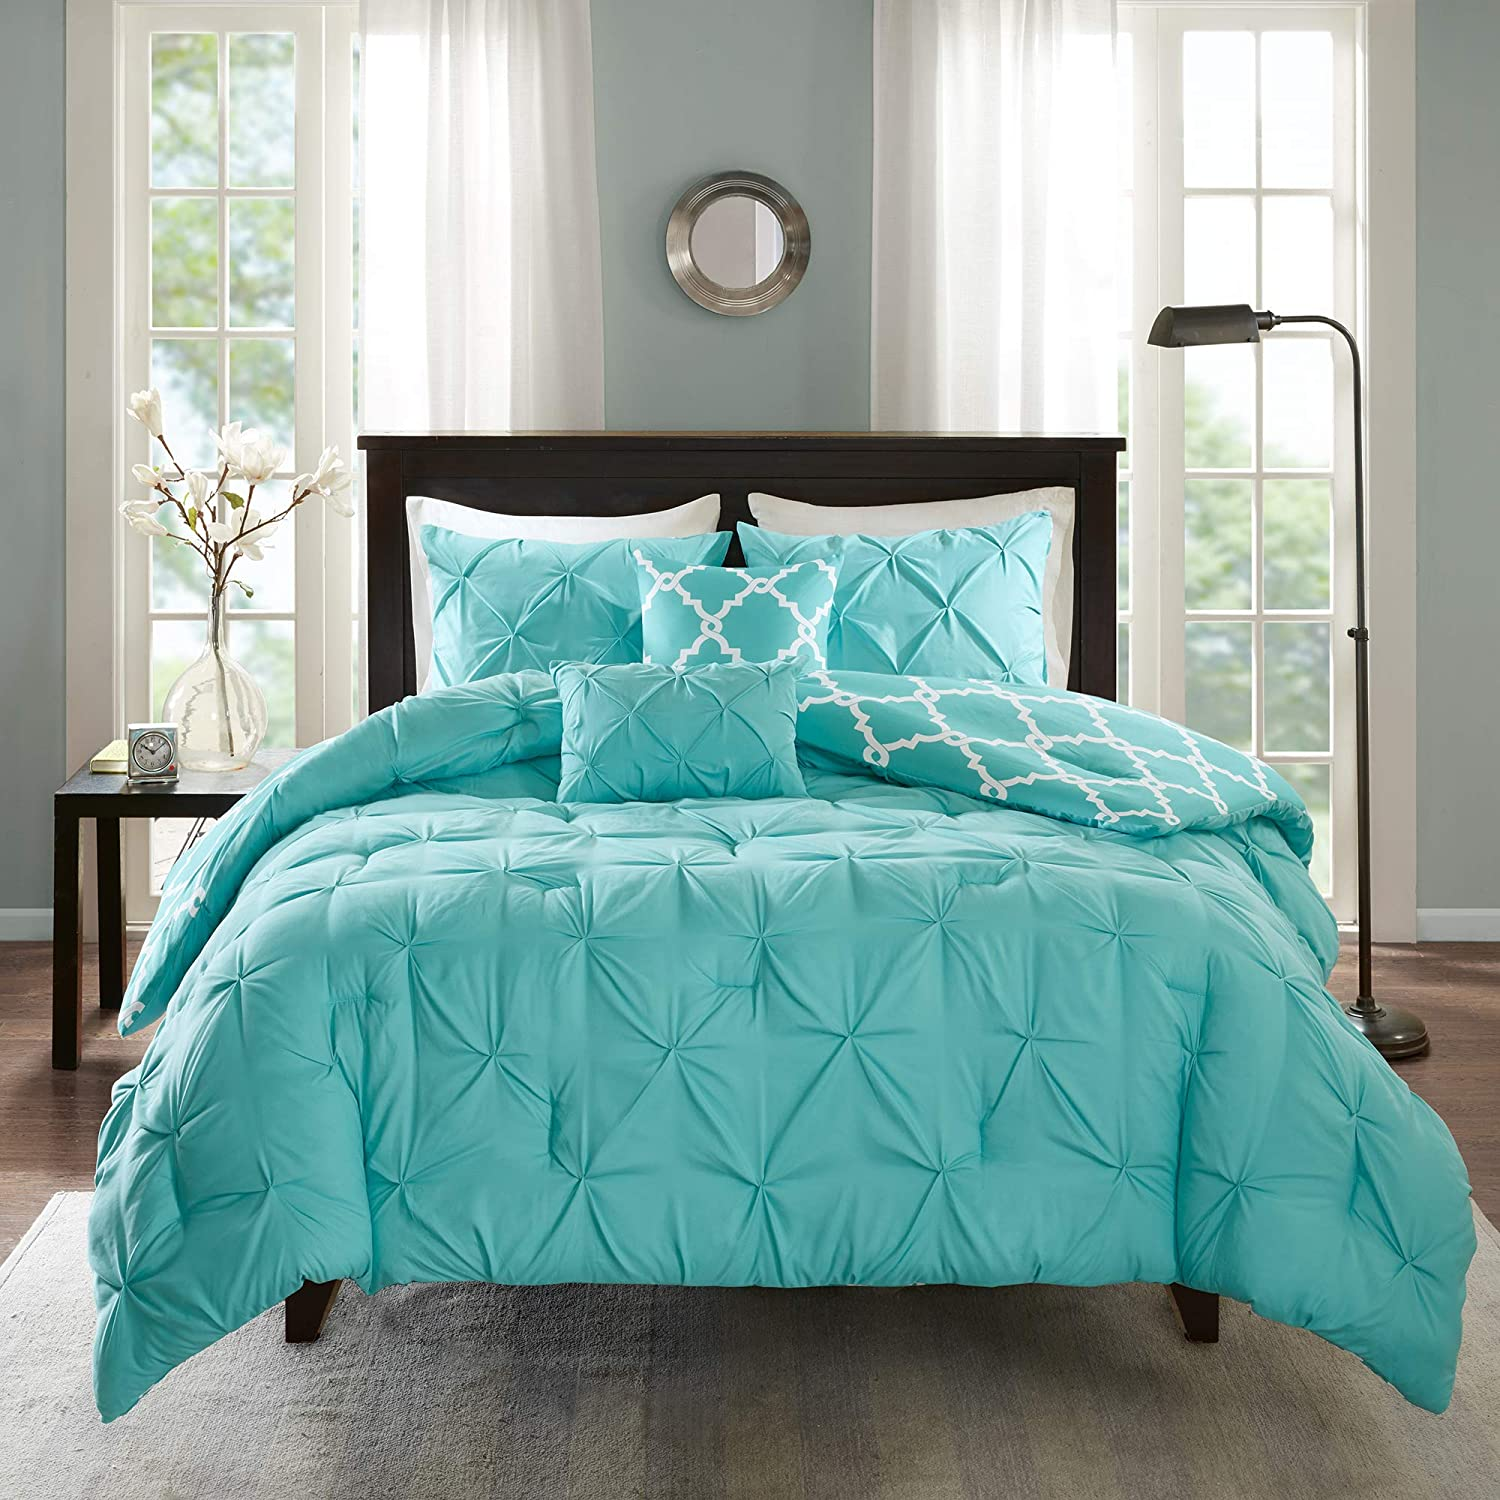 "Madison Park Essentials Kasey Comforter Set-Casual Tufted Diamond Design to Ogee Print Reverse All Season Cozy Bedding, Shams, Decorative Pillow, Full/Queen(90""x90""), Aqua 5 Piece"